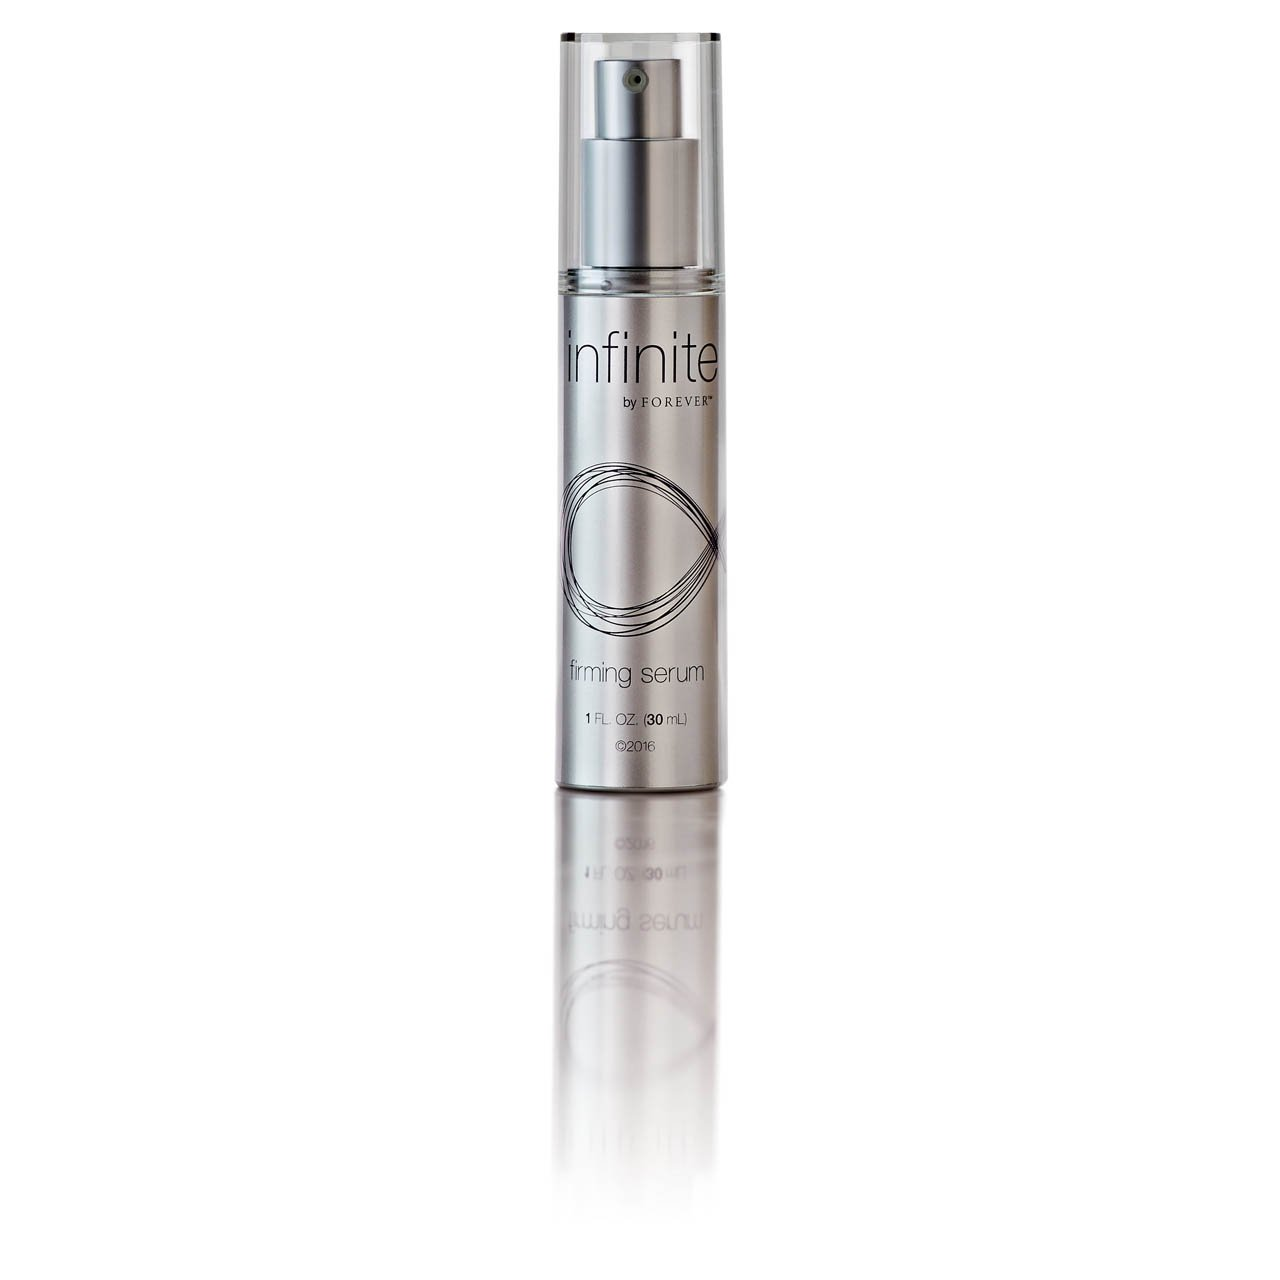 Order Infinite by Forever Firming Serum Canada